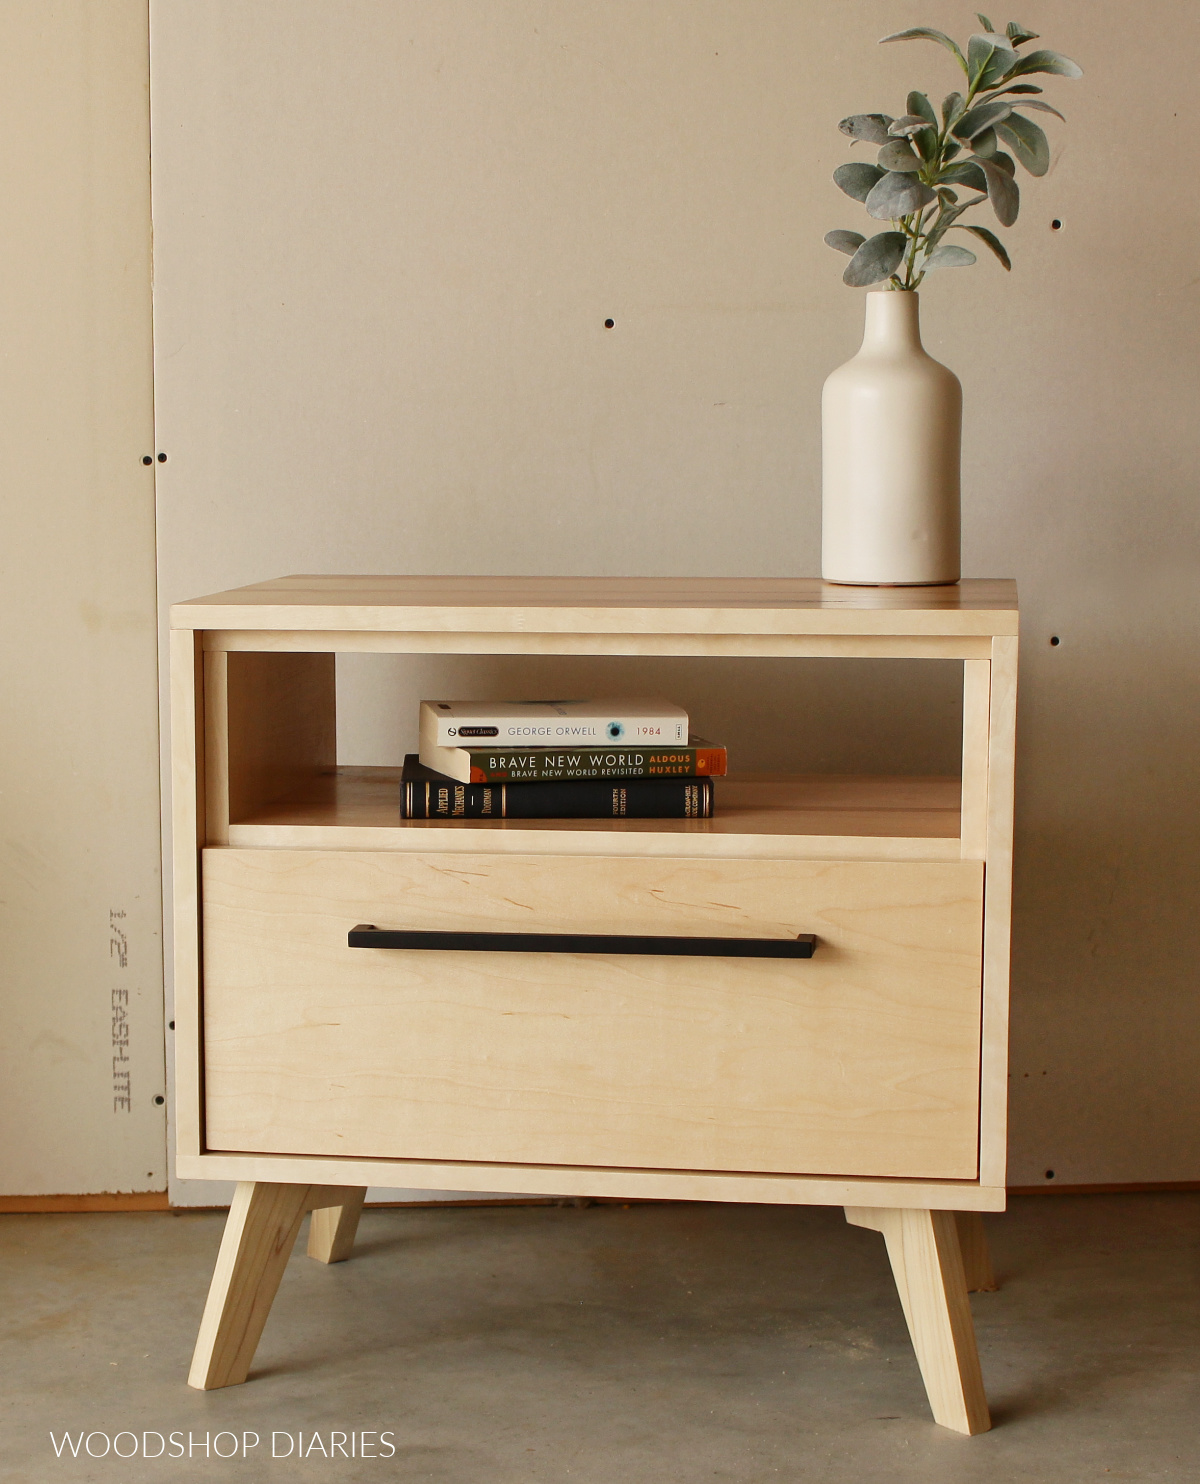 Finished nightstand--maple plywood finished with clear coat and a modern black handle on drawer.